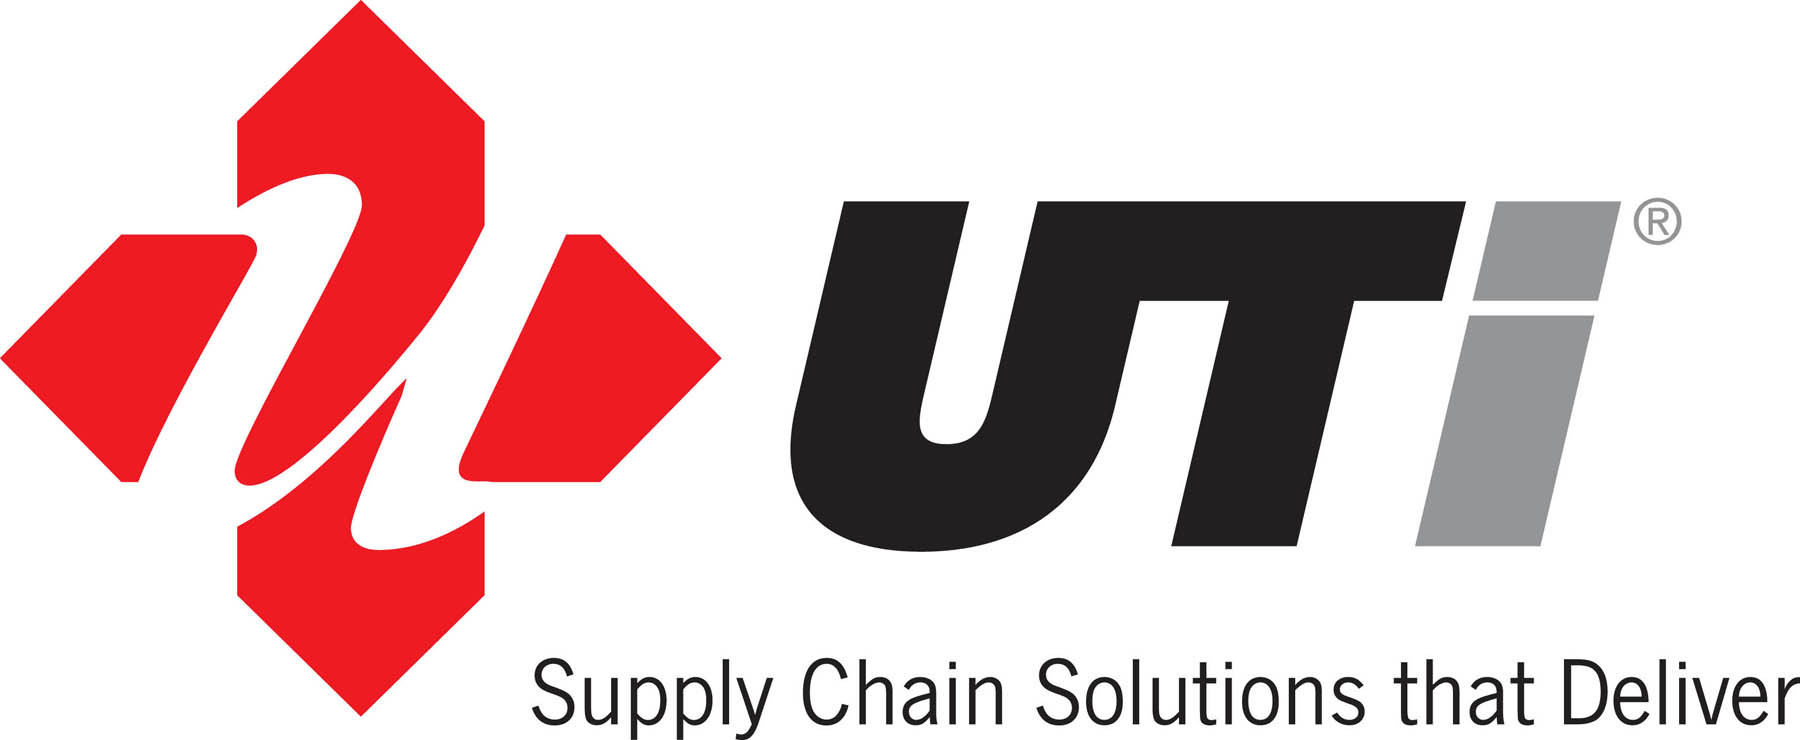 UTi Worldwide Opens State-of-the-Art Multi-Client 3PL Logistics ...